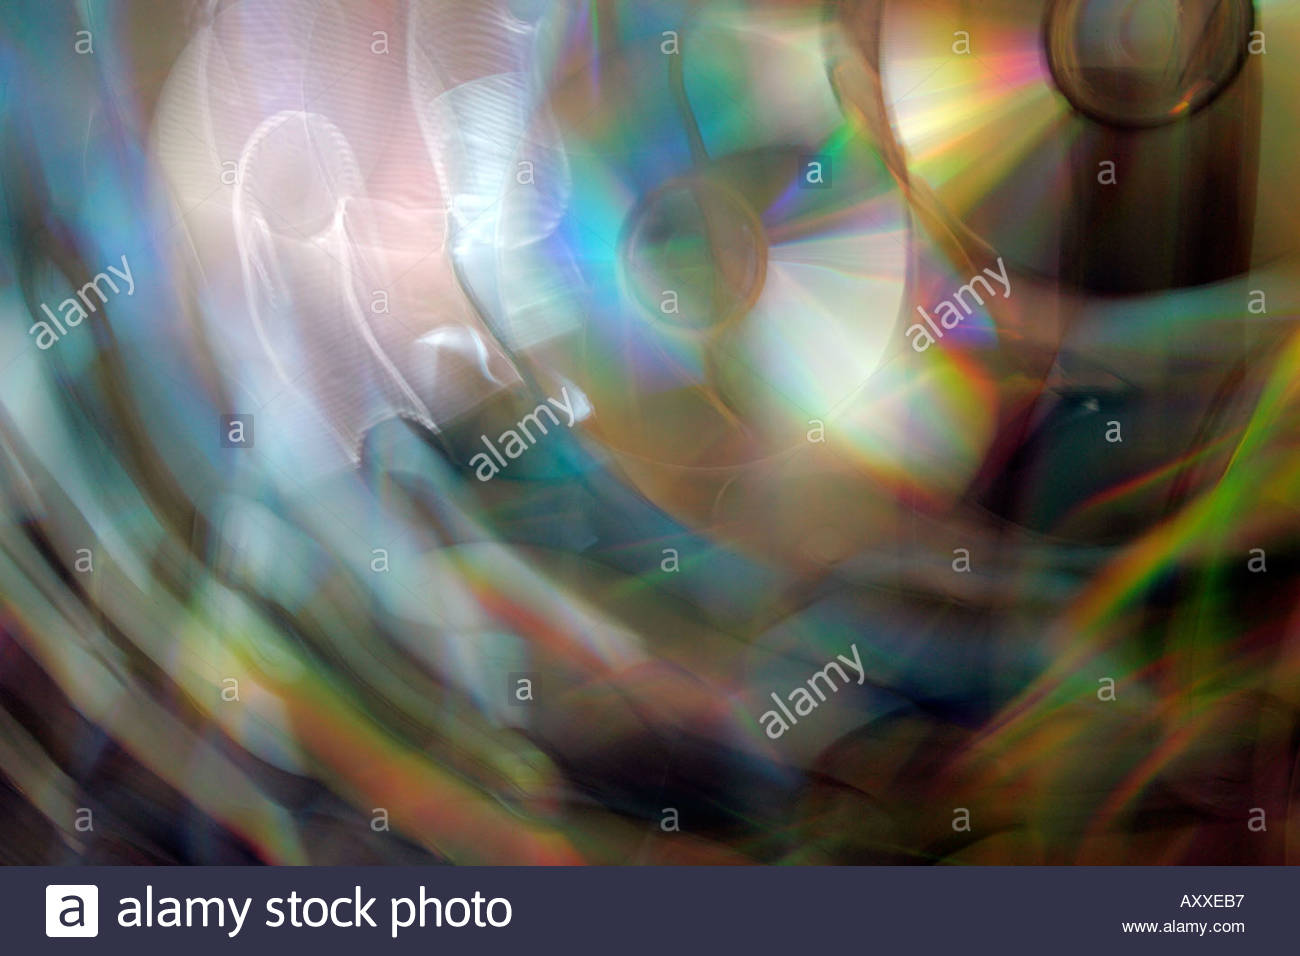 CD s - Stock Image